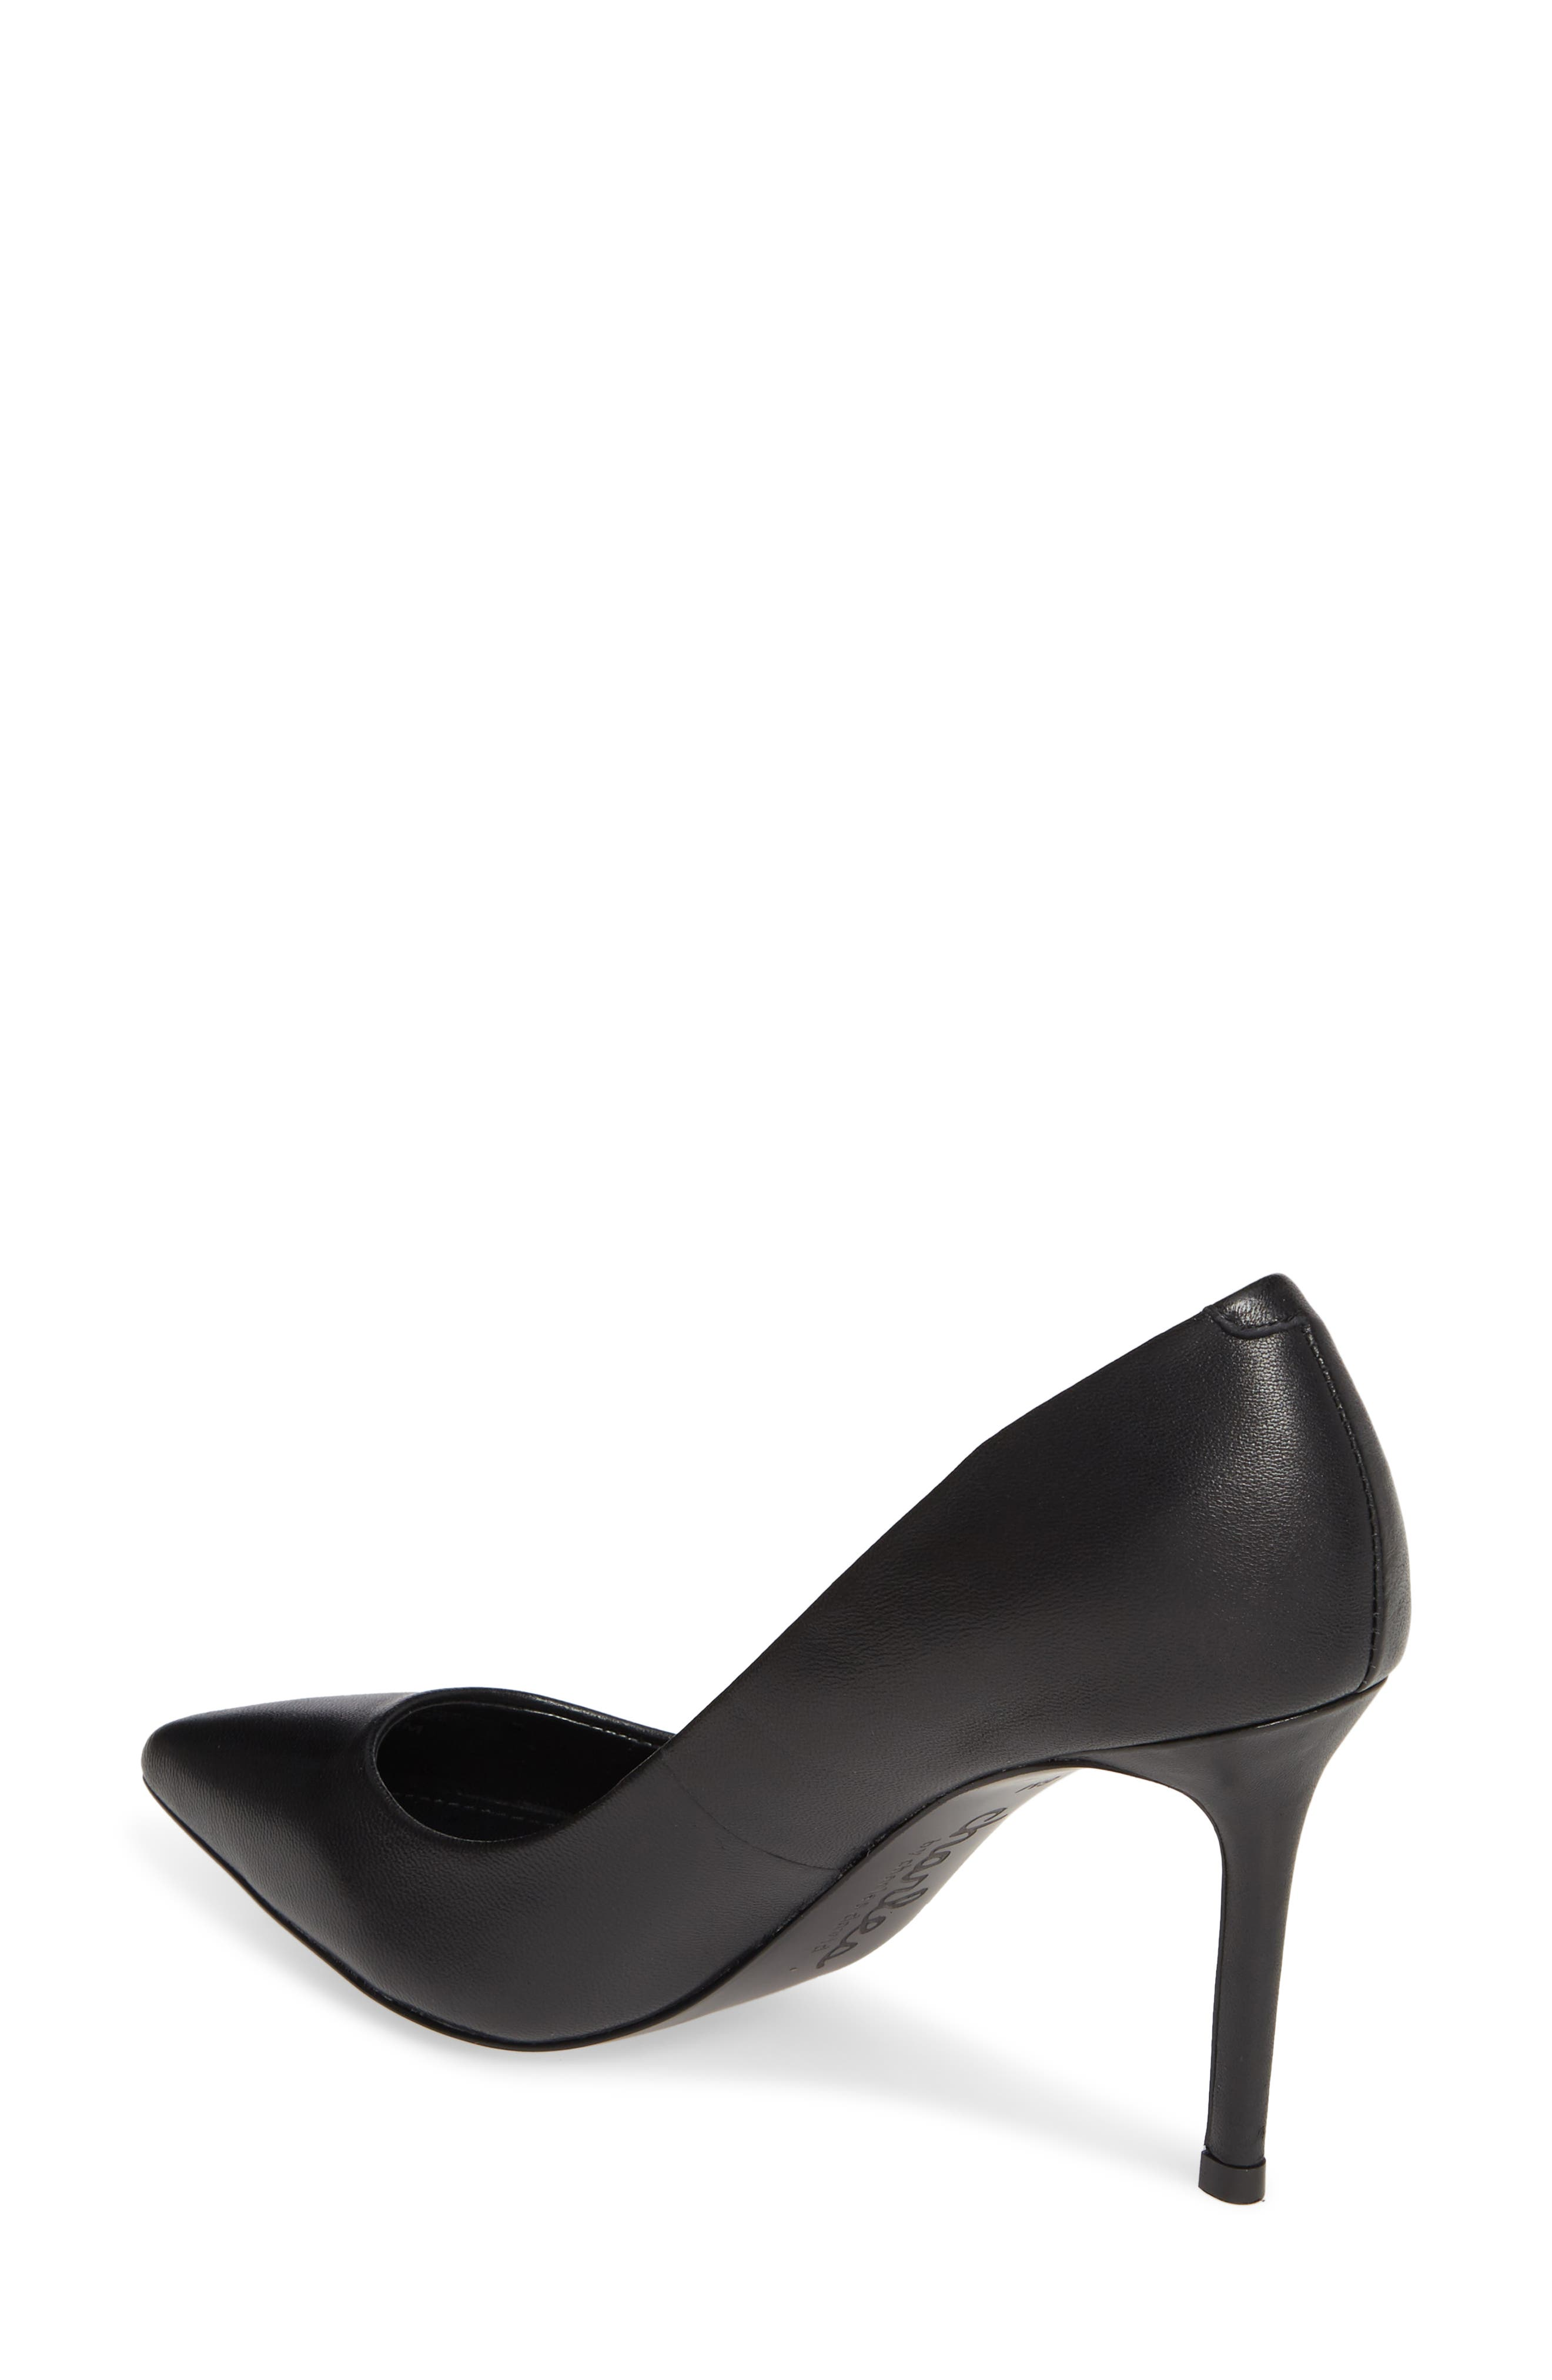 CHARLES BY CHARLES DAVID, Vicky Pump, Alternate thumbnail 2, color, BLACK LEATHER